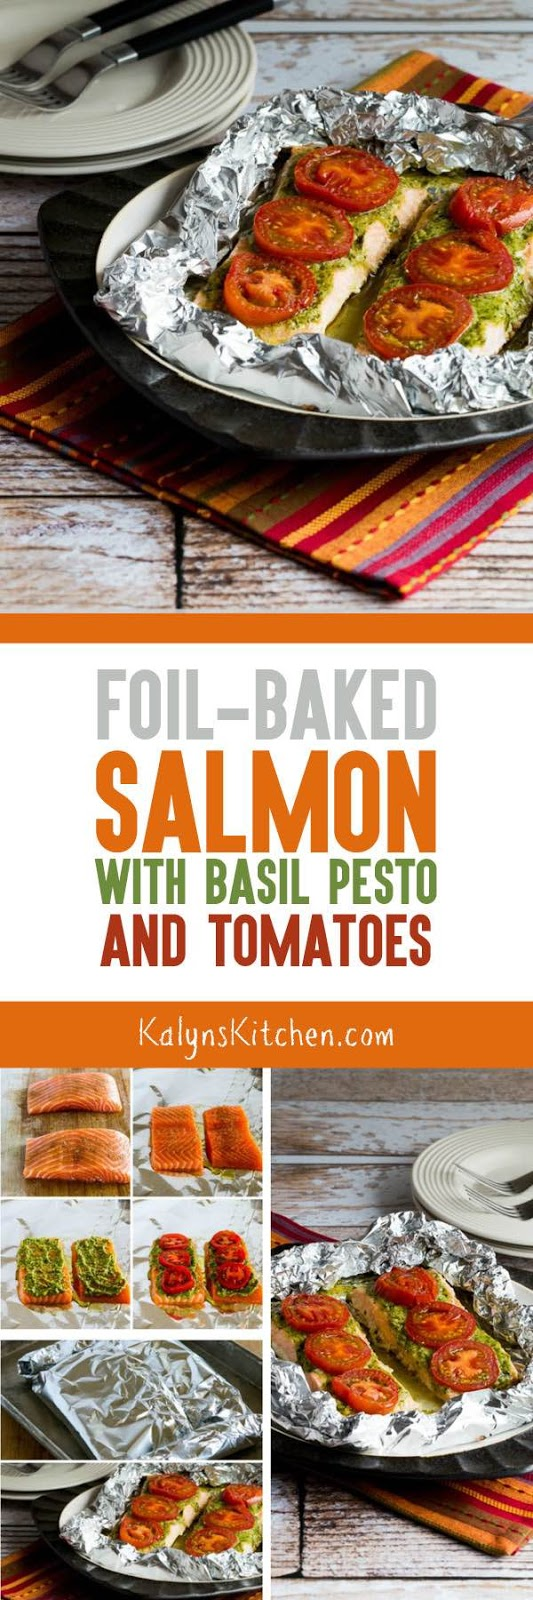 Foil-Baked Salmon with Basil Pesto and Tomatoes found on KalynsKitchen ...